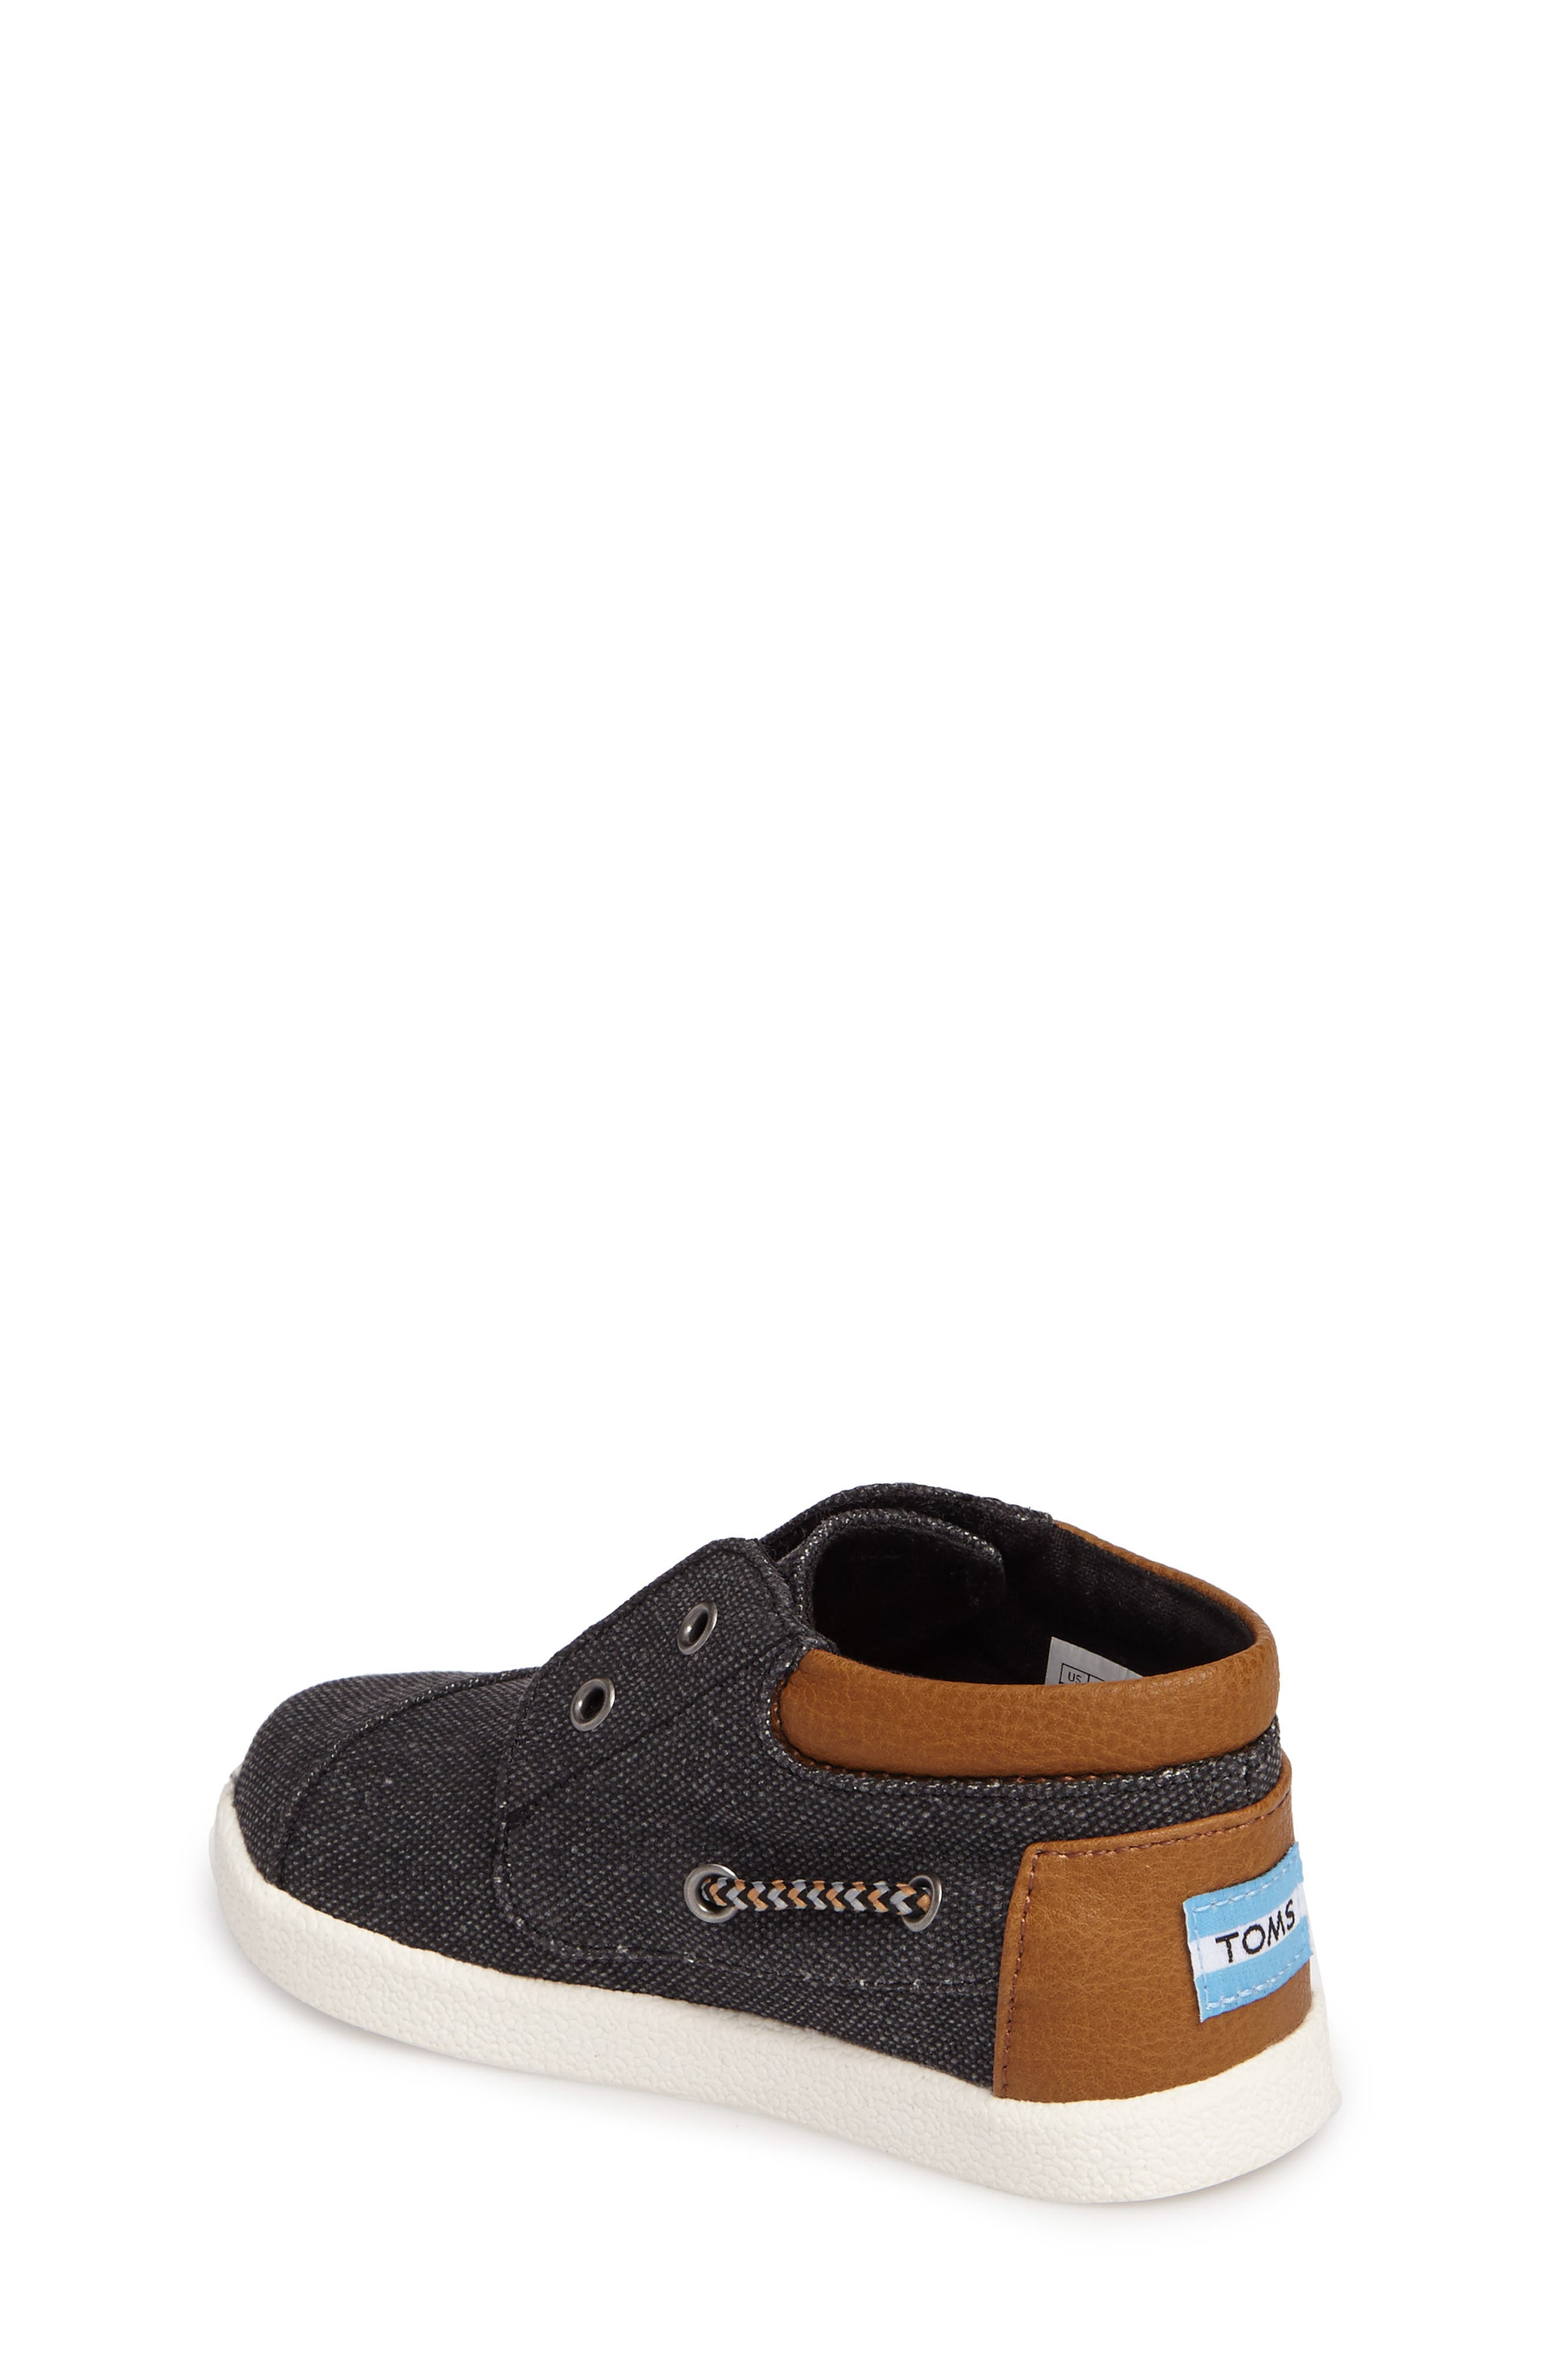 'Bimini - Tiny' Slip-On,                             Alternate thumbnail 2, color,                             Black Washed Canvas